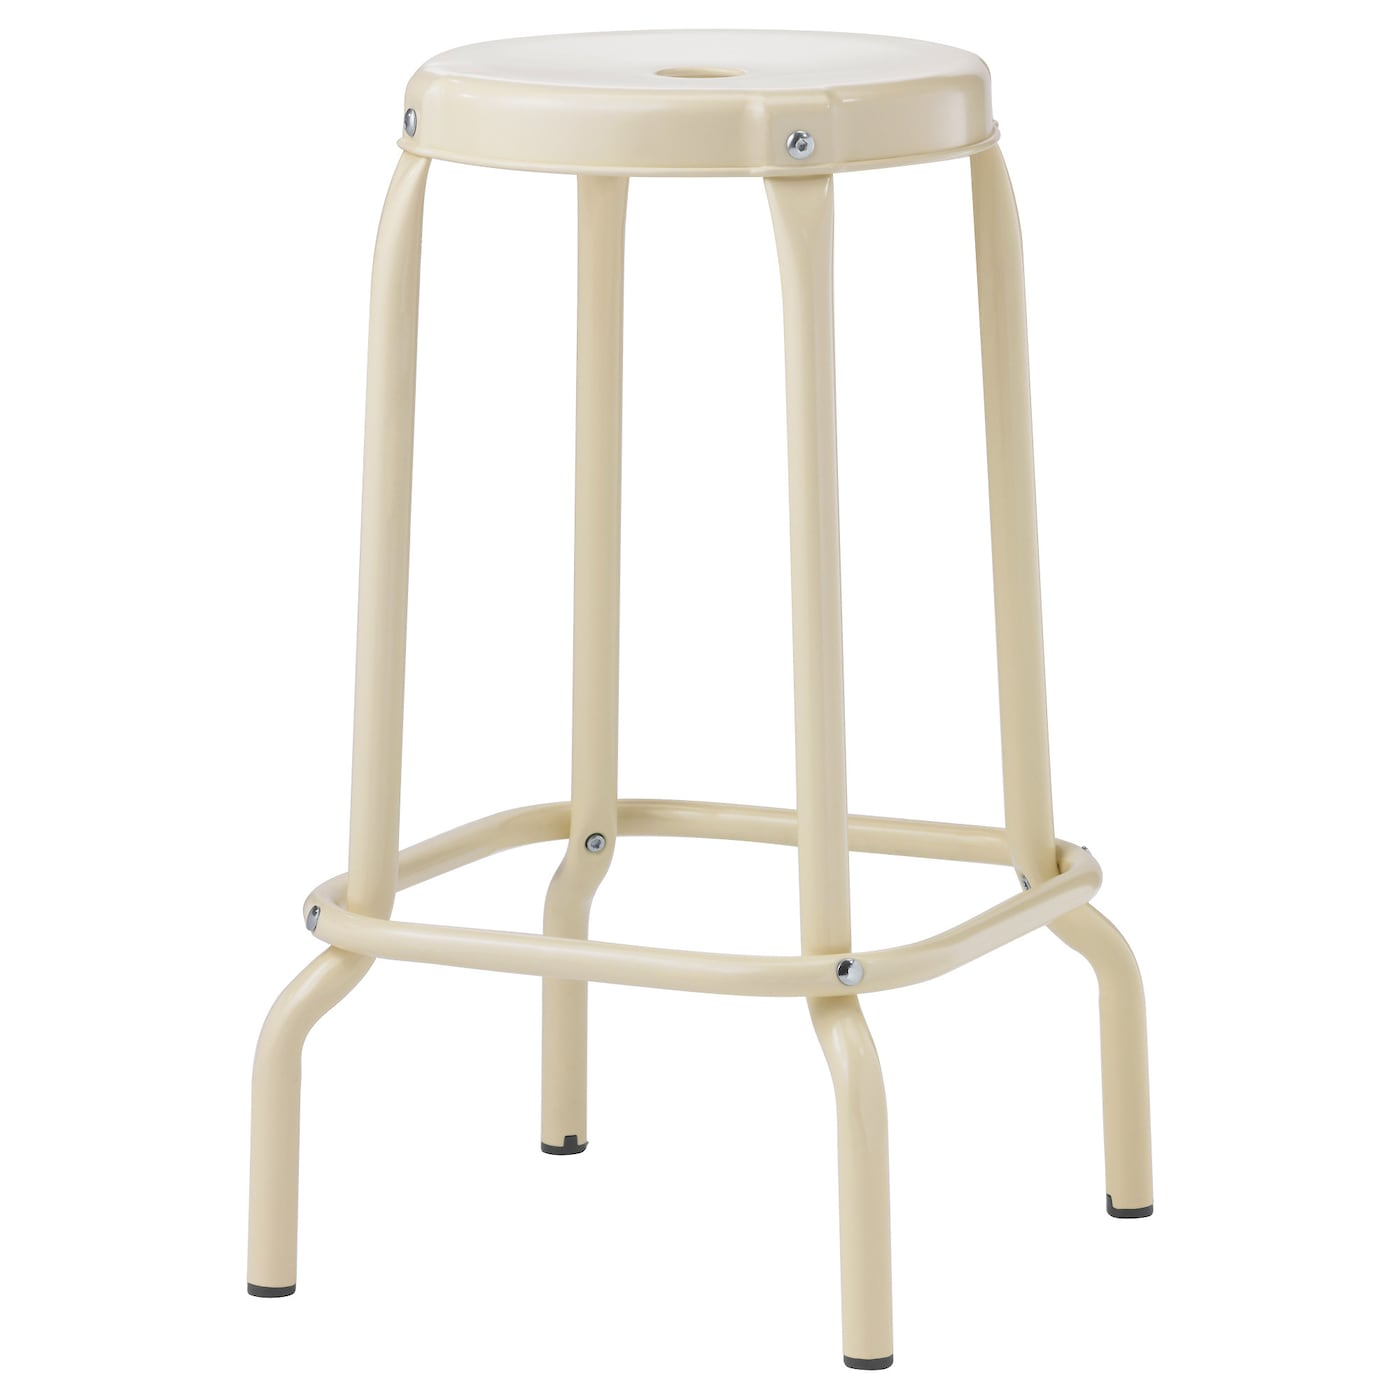 r skog tabouret de bar beige 63 cm ikea. Black Bedroom Furniture Sets. Home Design Ideas